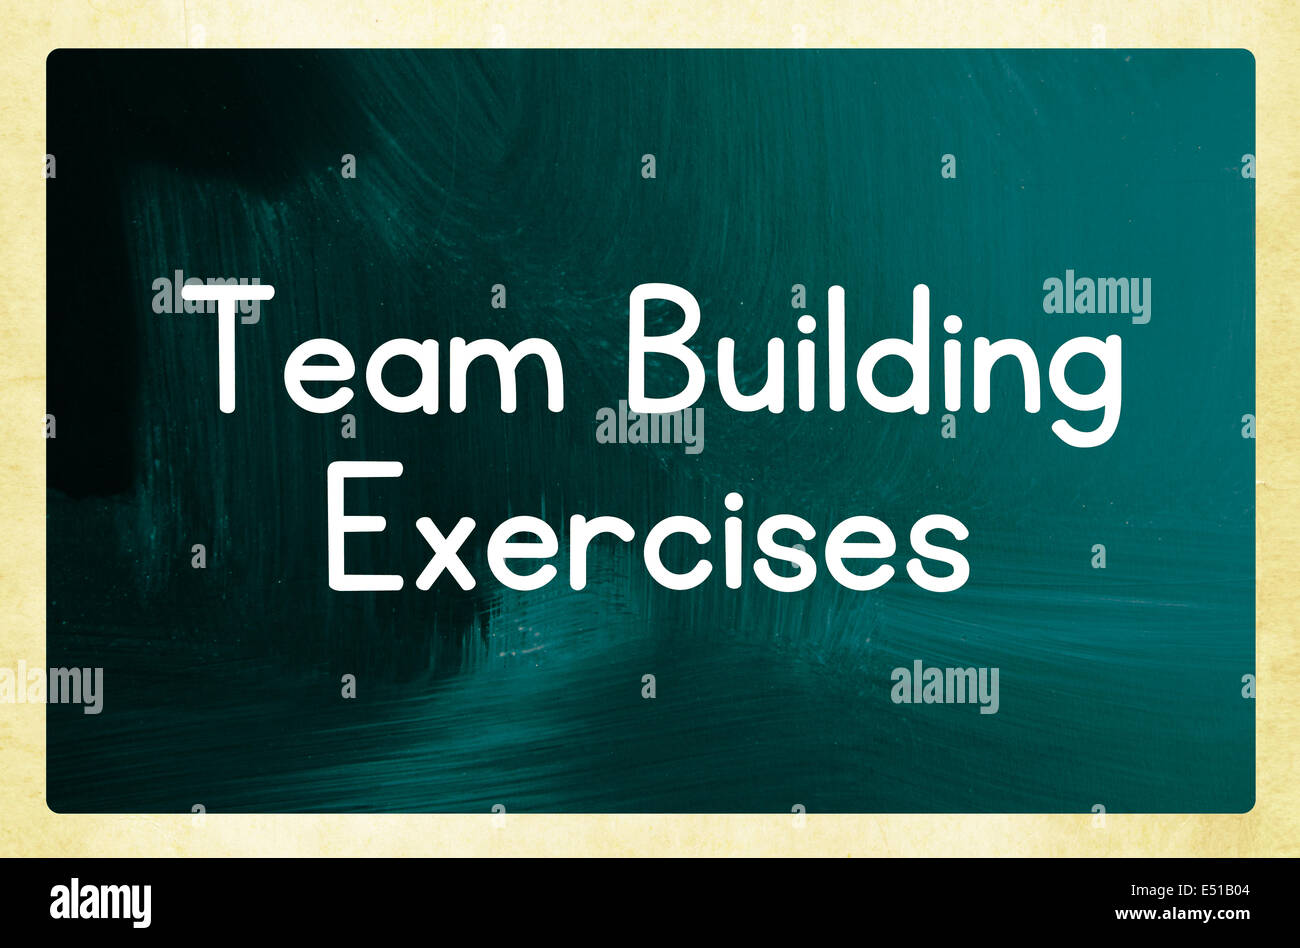 team building exercises - Stock Image